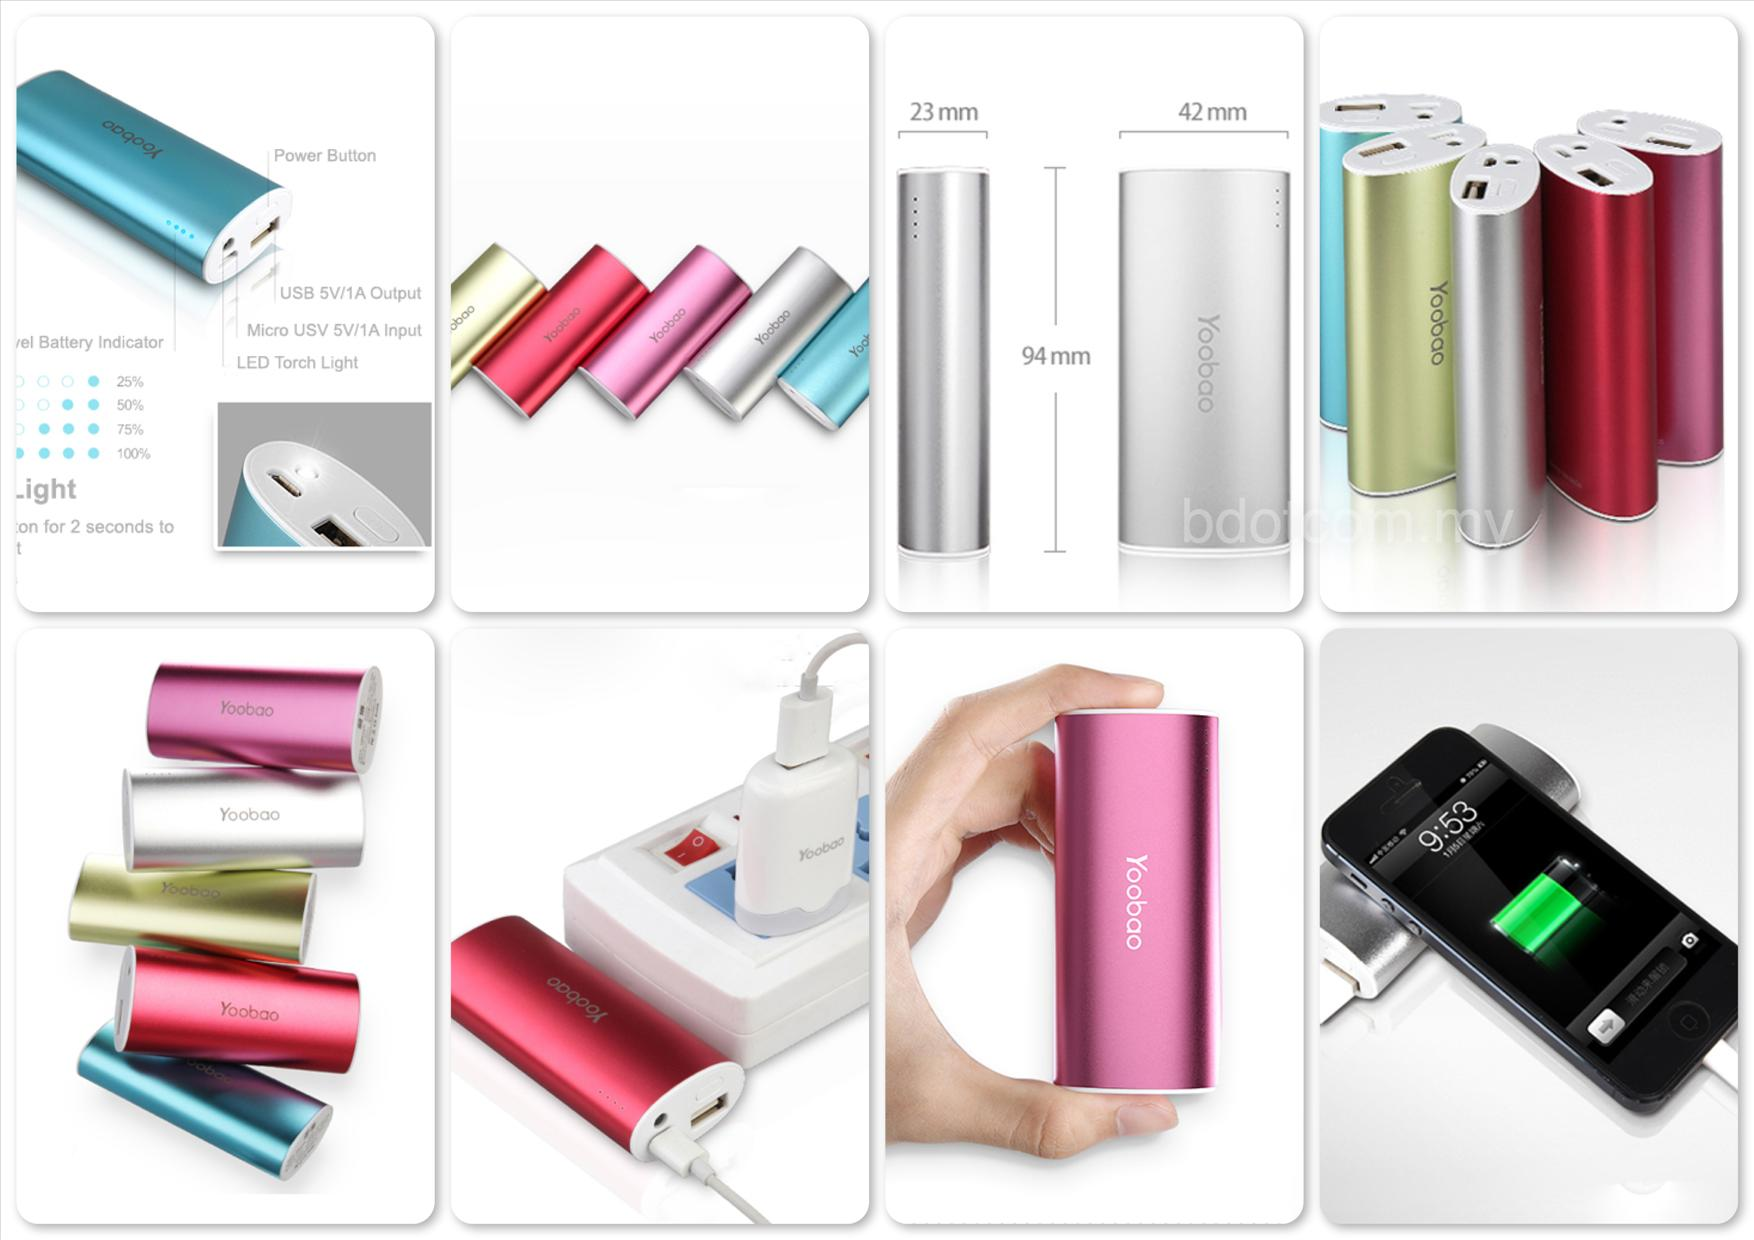 Bdotcom = Yoobao Magic Wand Power Bank 5200 mAh YB-6012